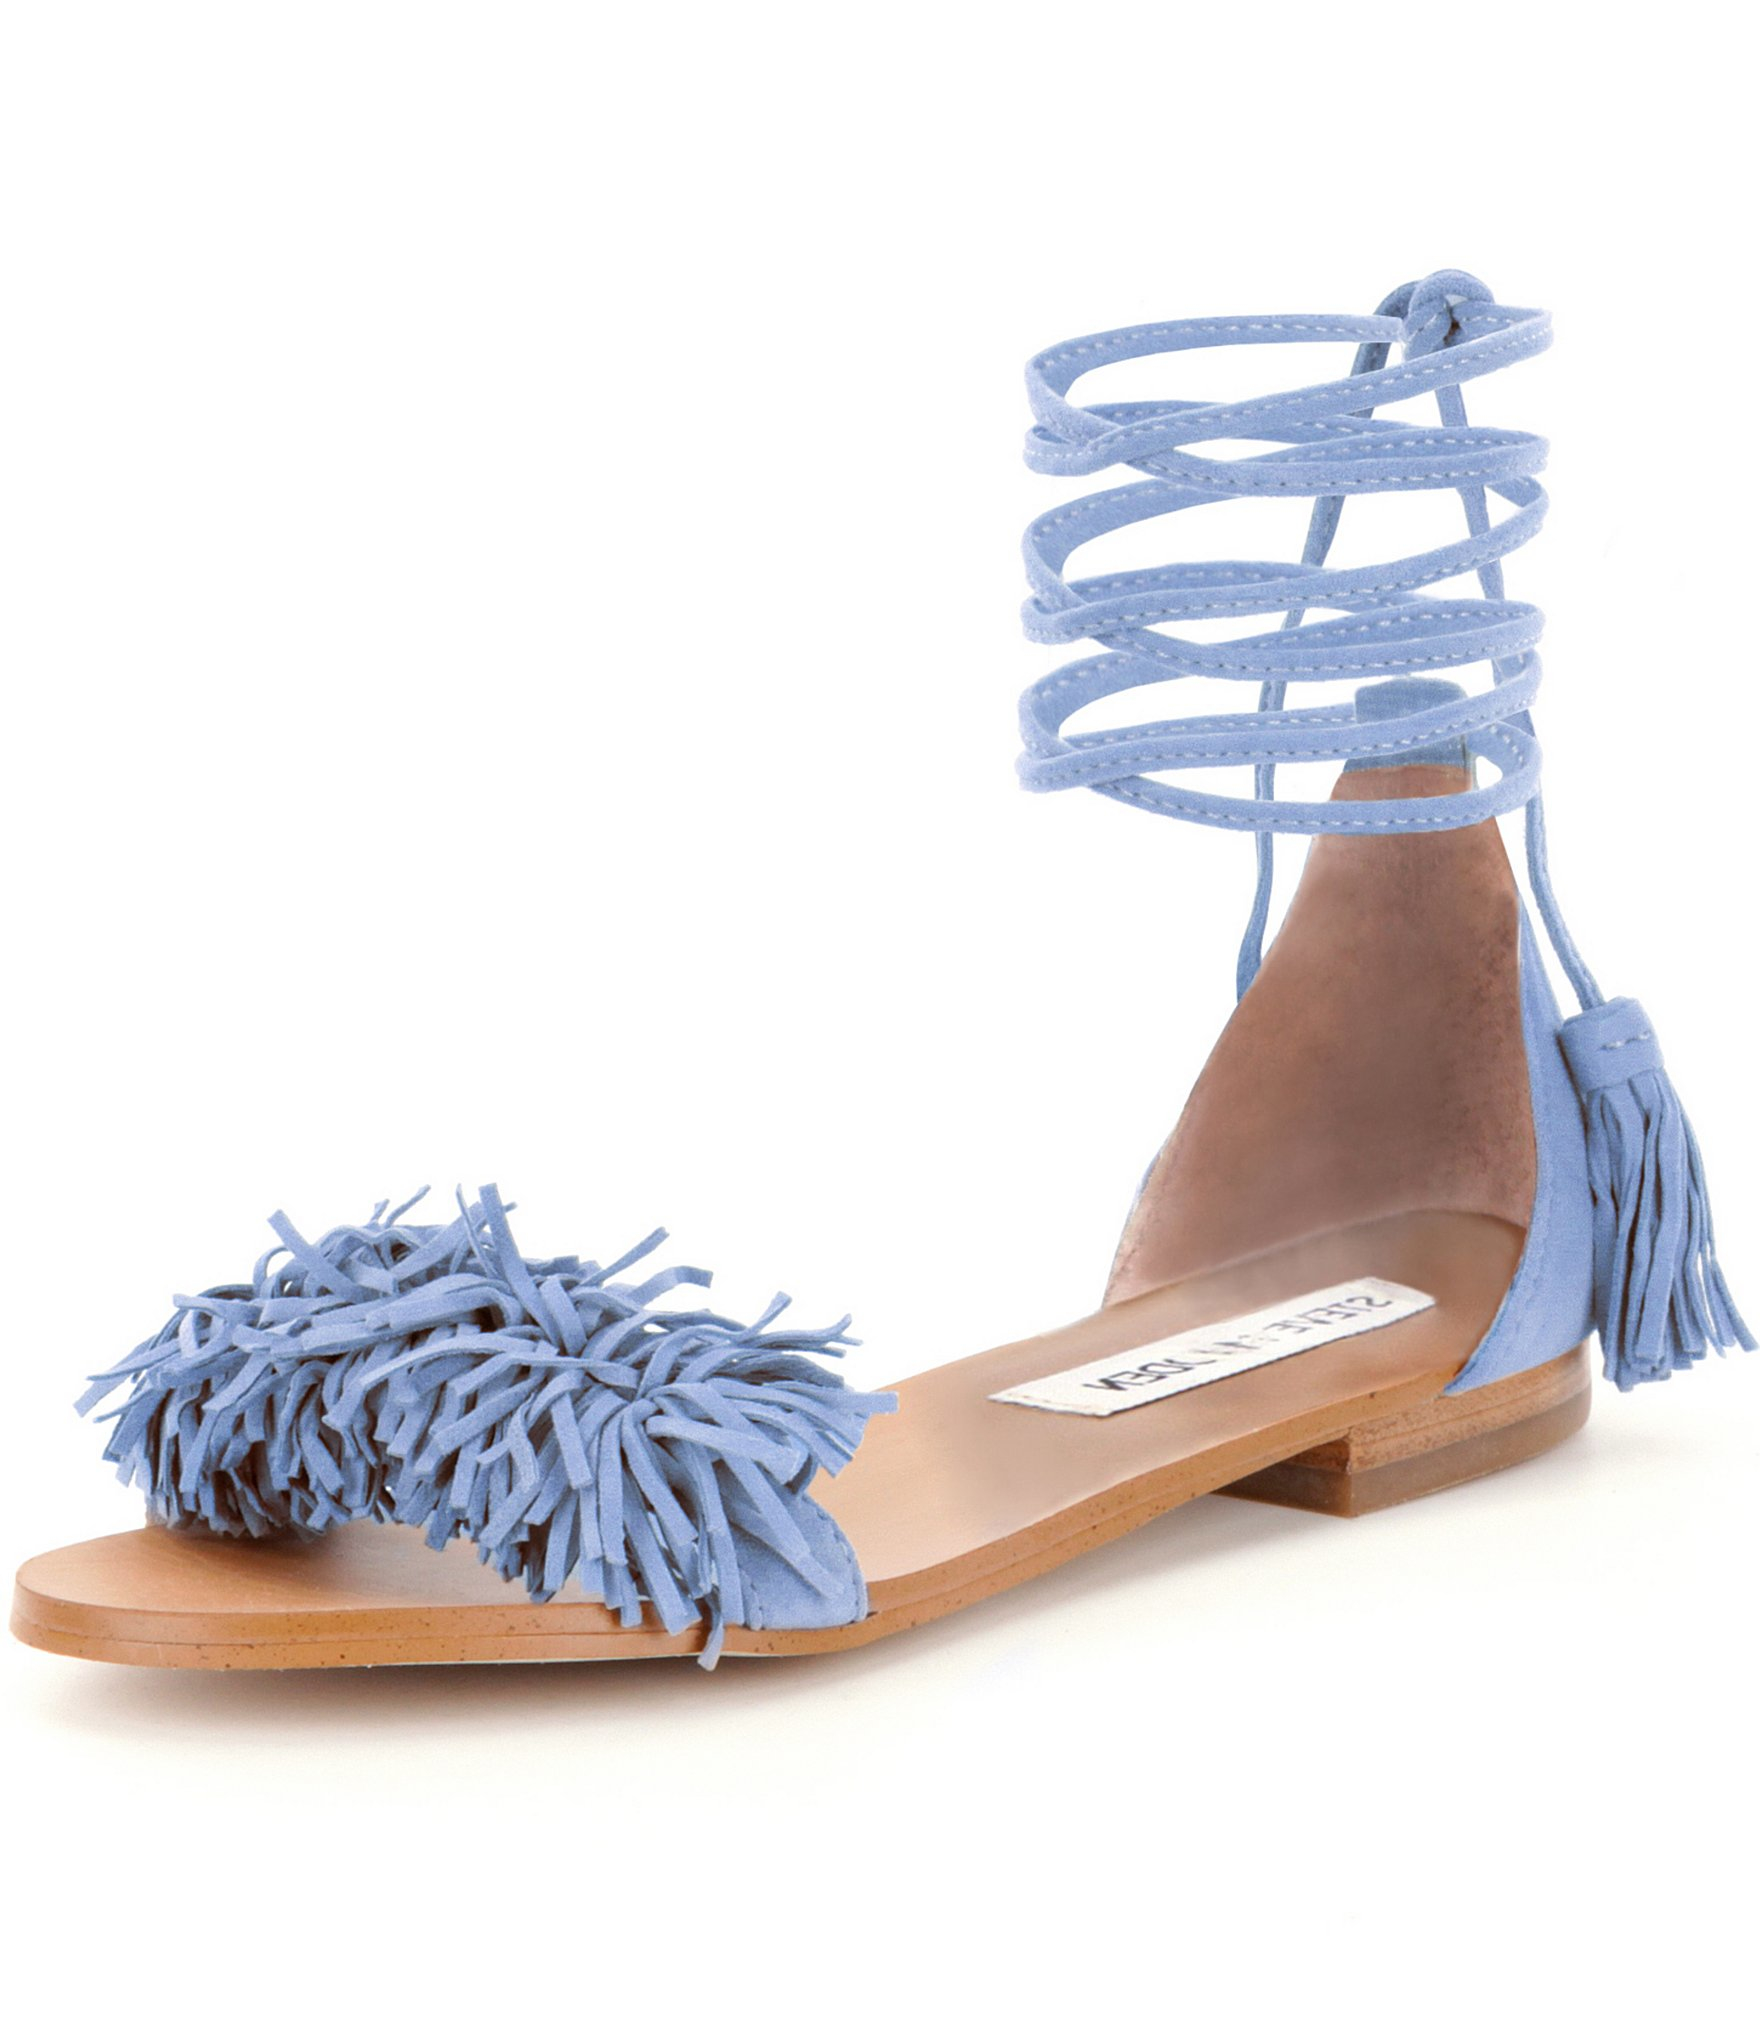 89998db2305 Steve Madden Blue Sweetyy Lace-up Fringe Sandals